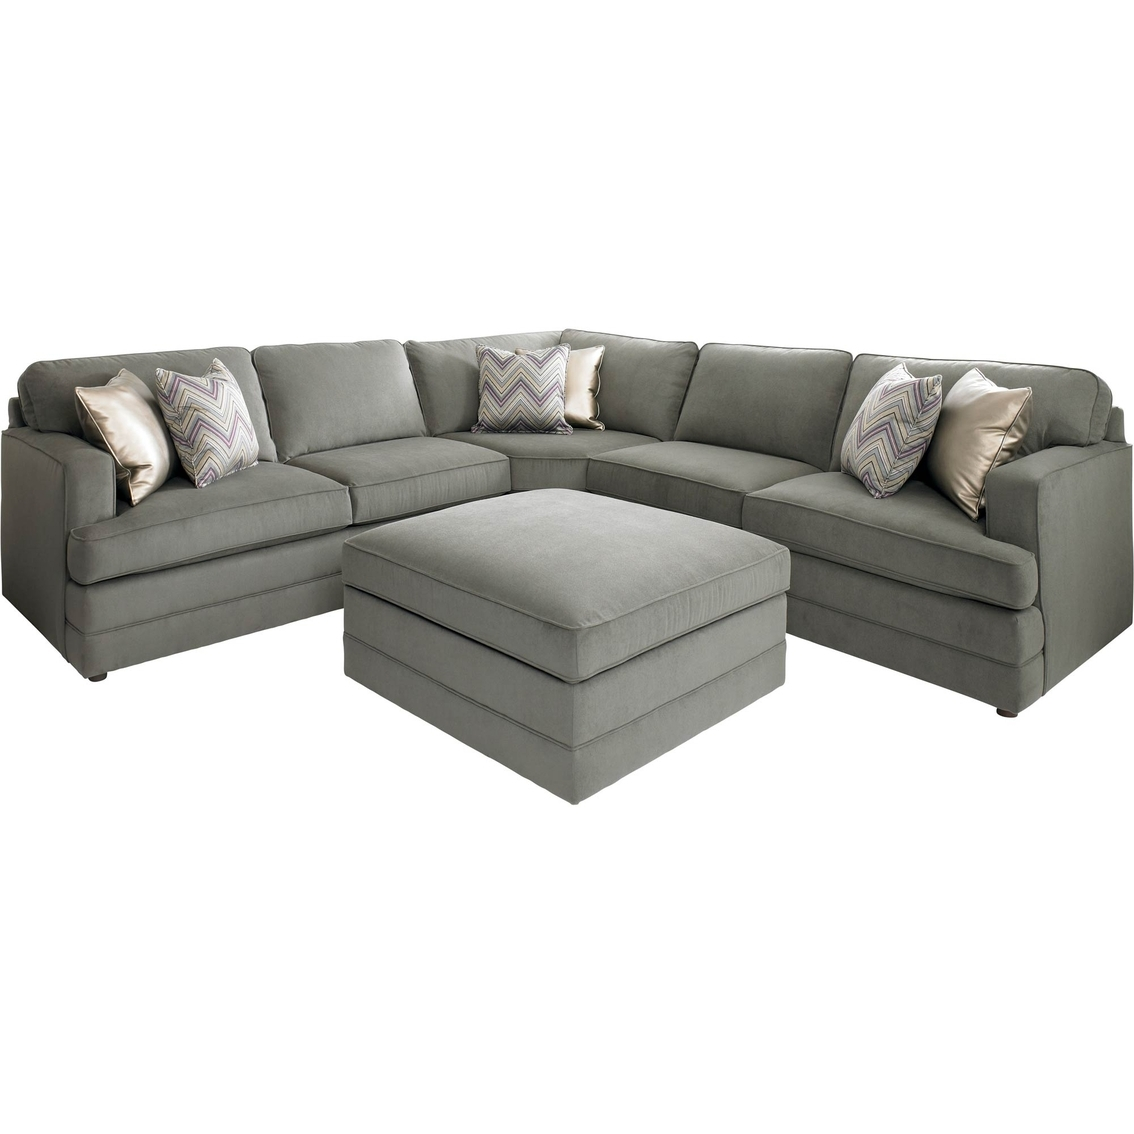 Bassett Dalton L Shaped Sectional Sofa With Ottoman Base House Regarding Bassett Sectional Sofa (View 9 of 15)